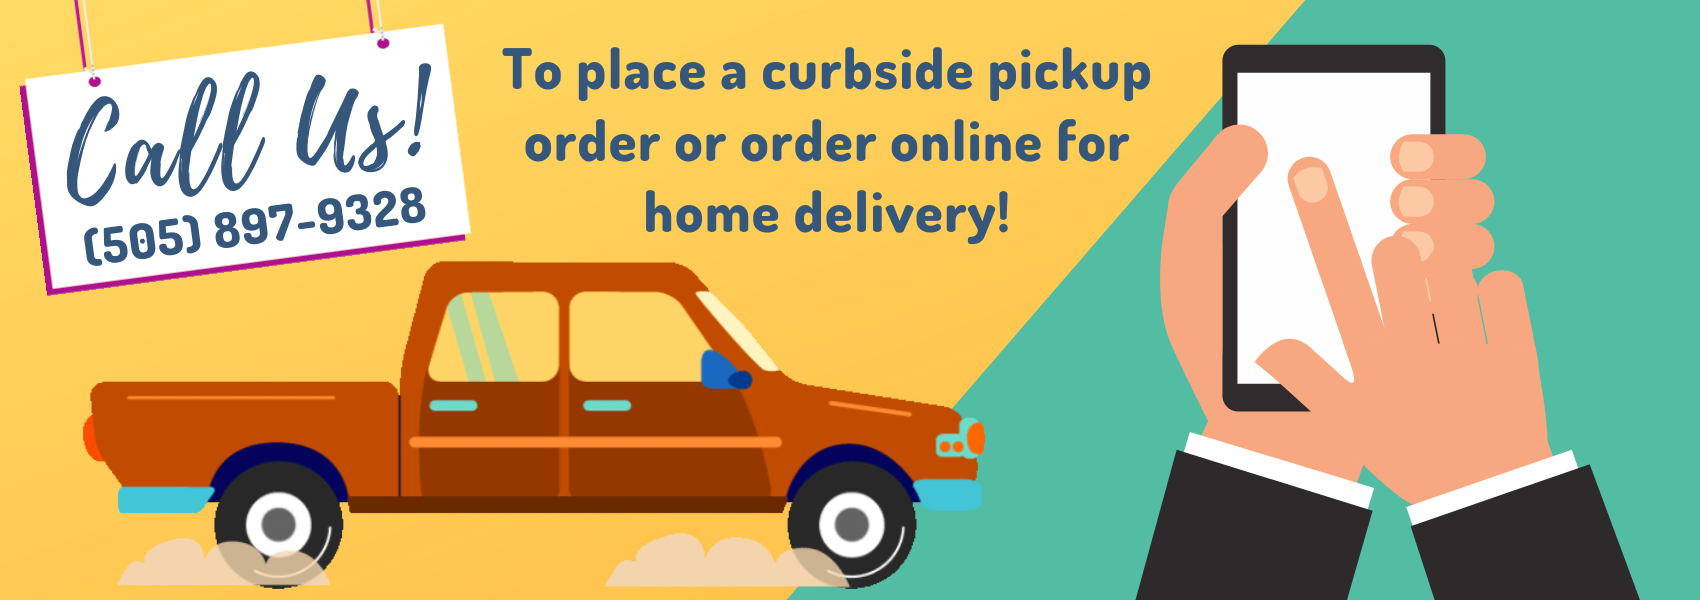 Home Delivery and Pickup